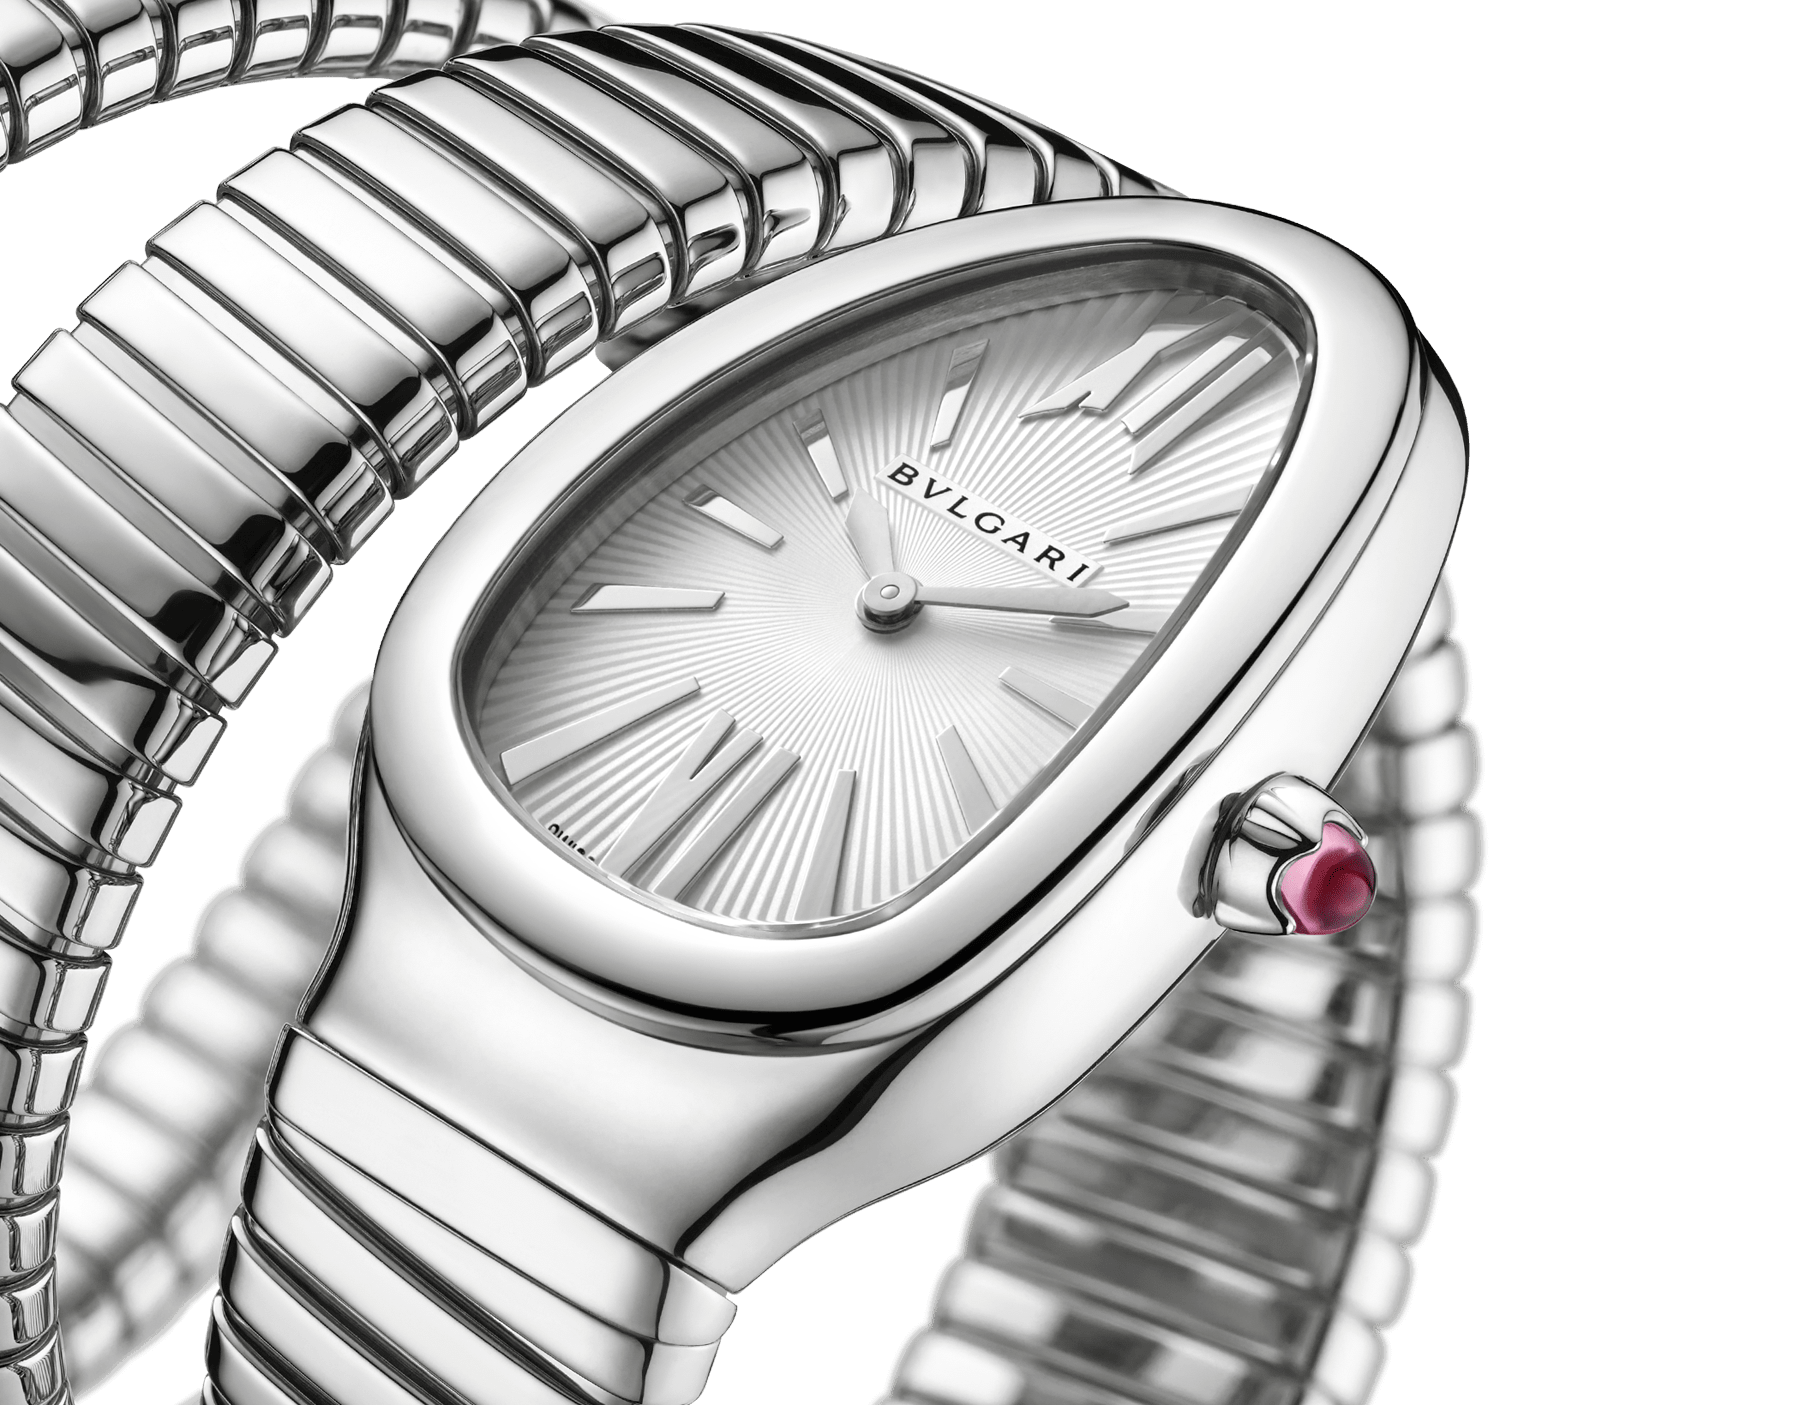 Serpenti Tubogas double spiral watch in stainless steel case and bracelet, with silver opaline dial. 101911 image 3